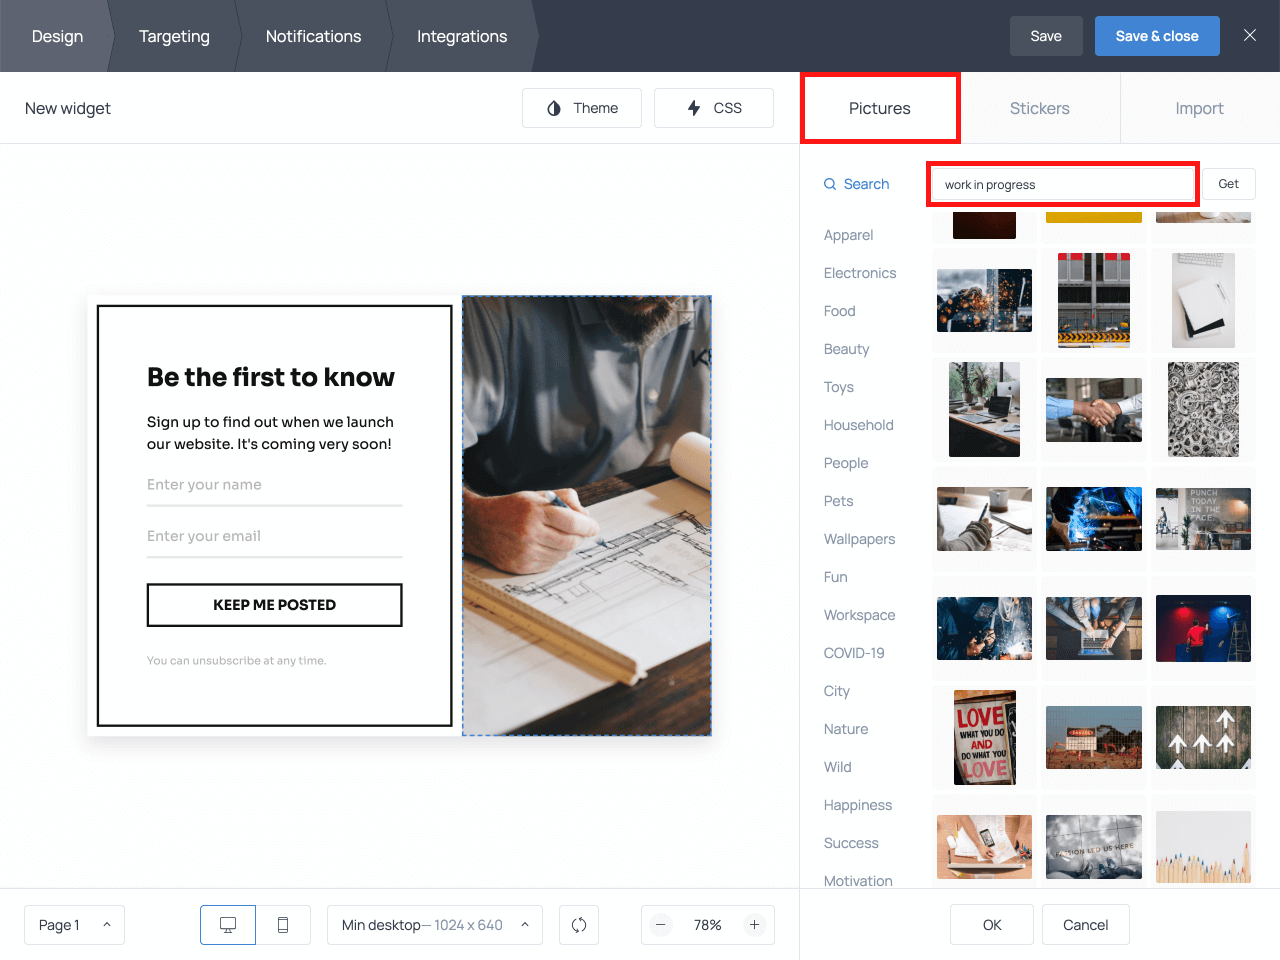 How to change an image on an email popup